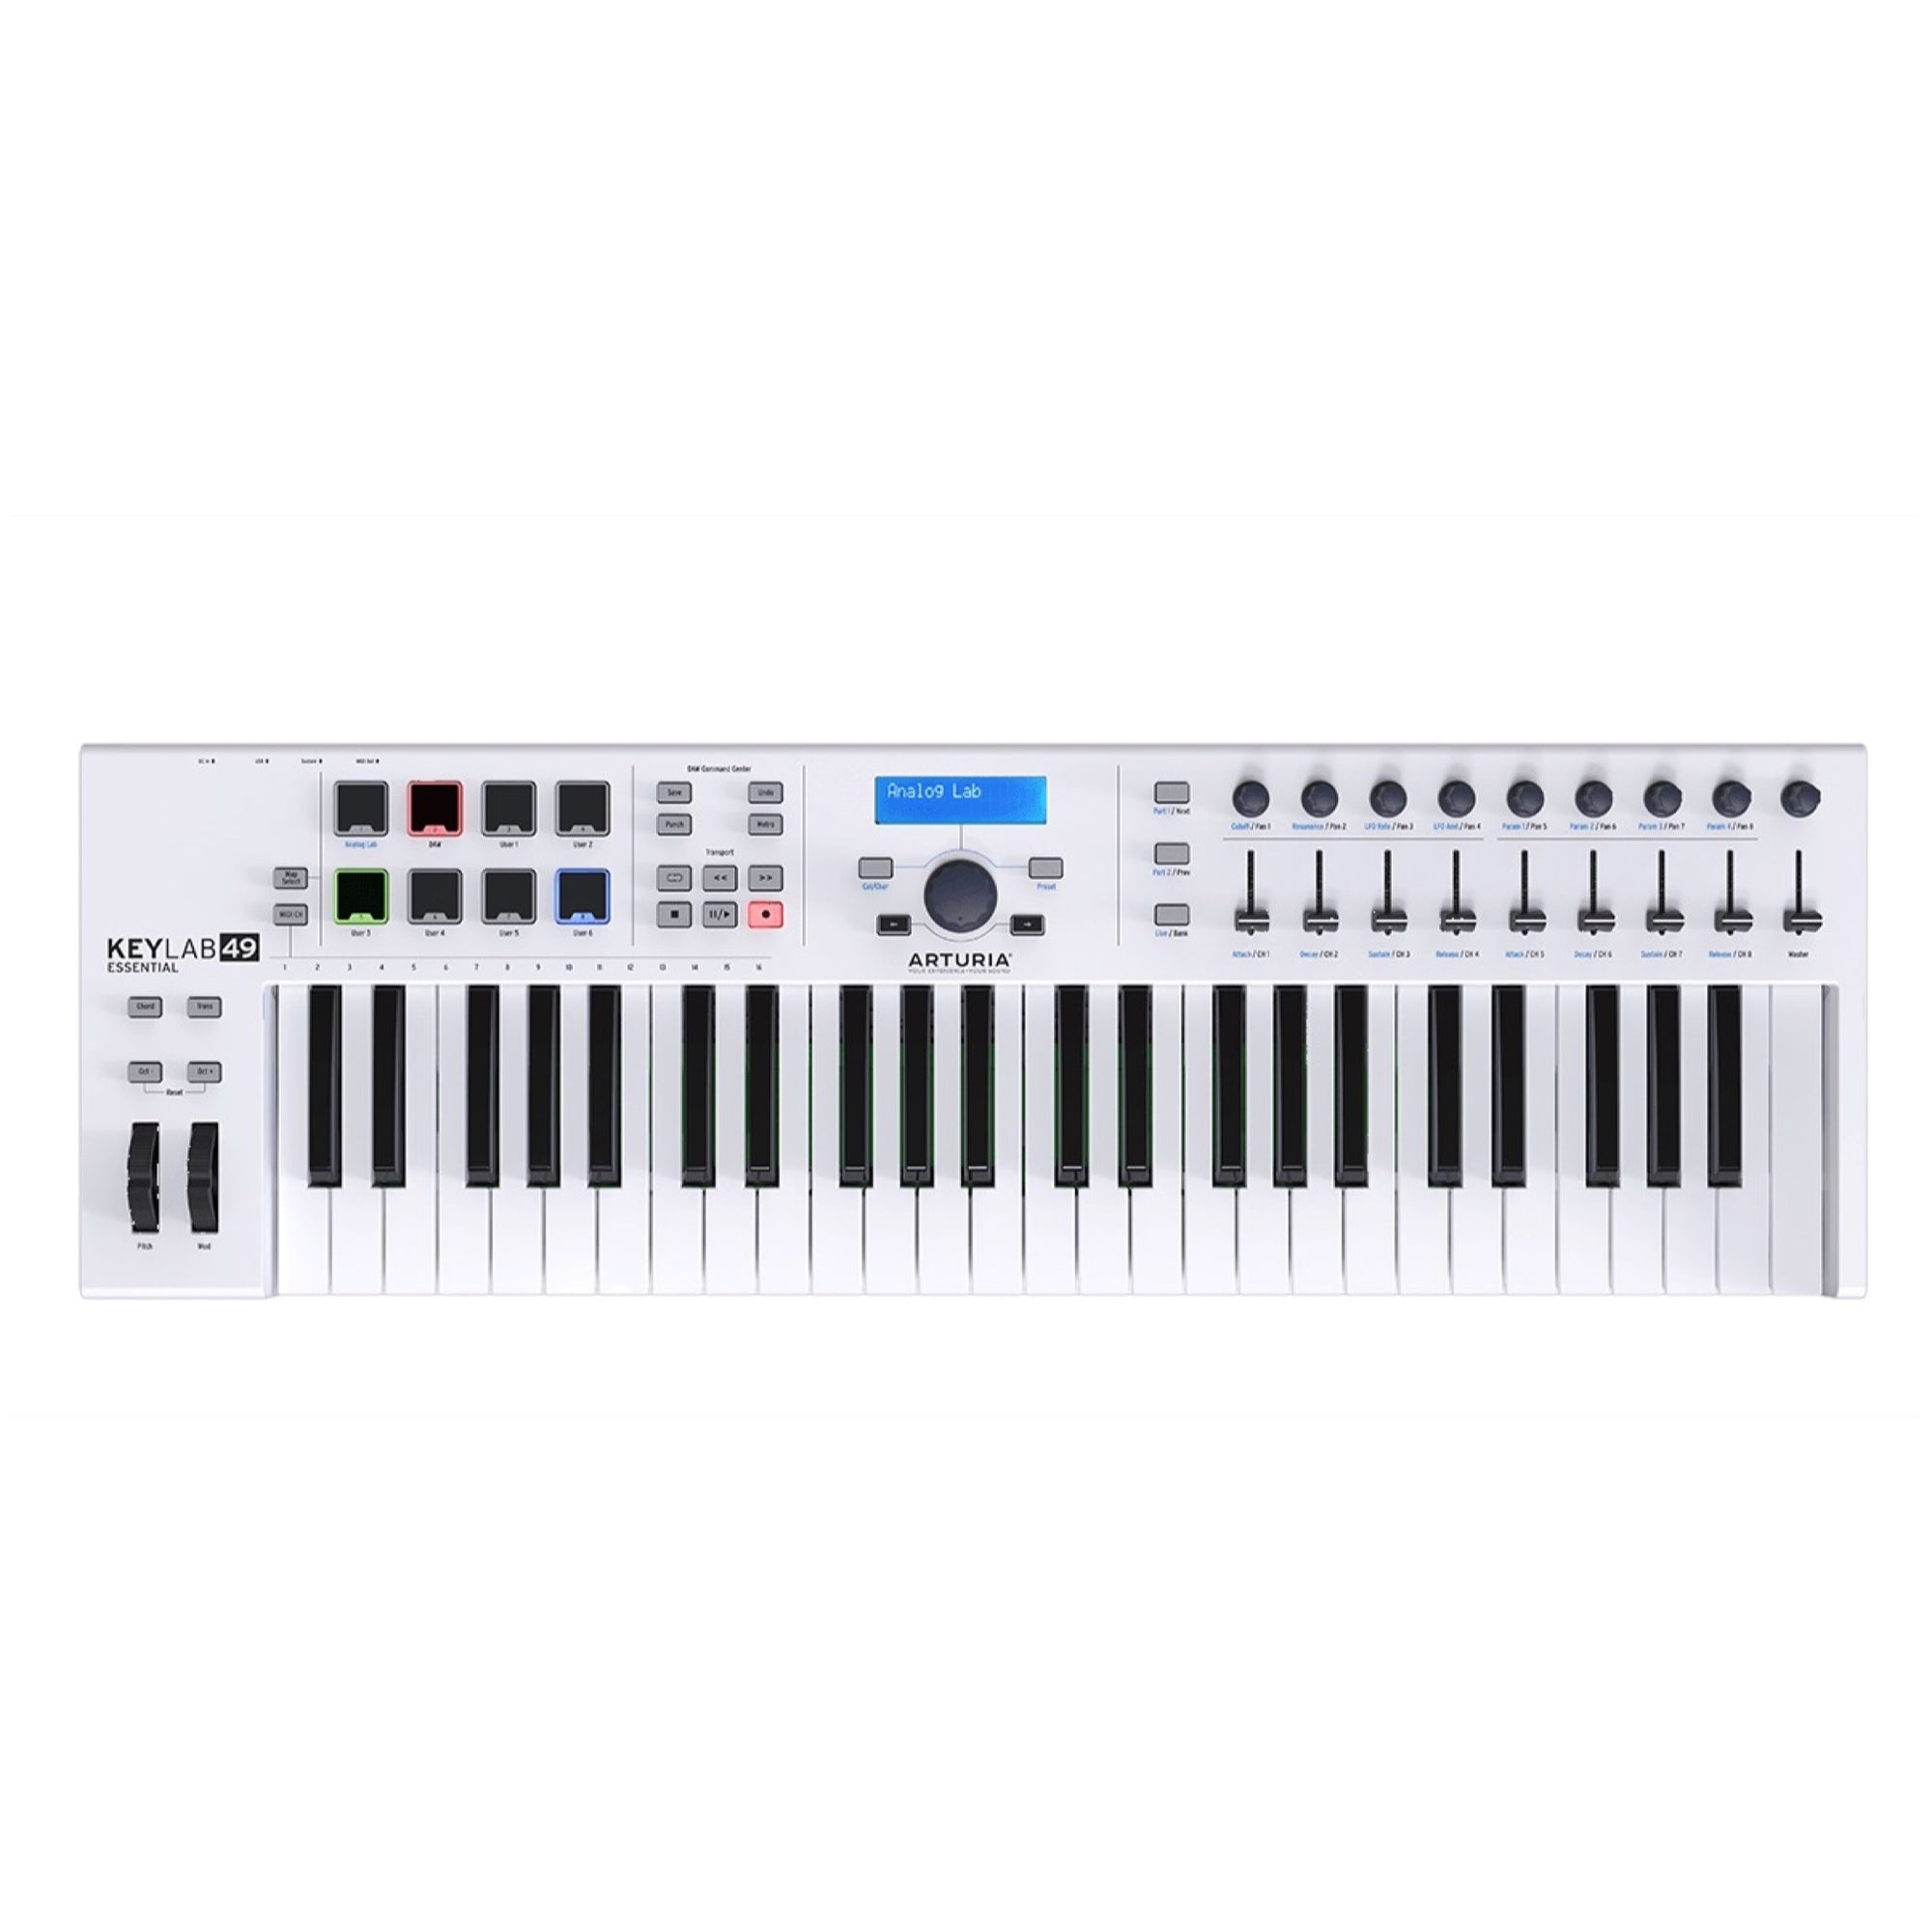 Arturia Keylab 49 Essential Keyboard Controller, 49-Key, White